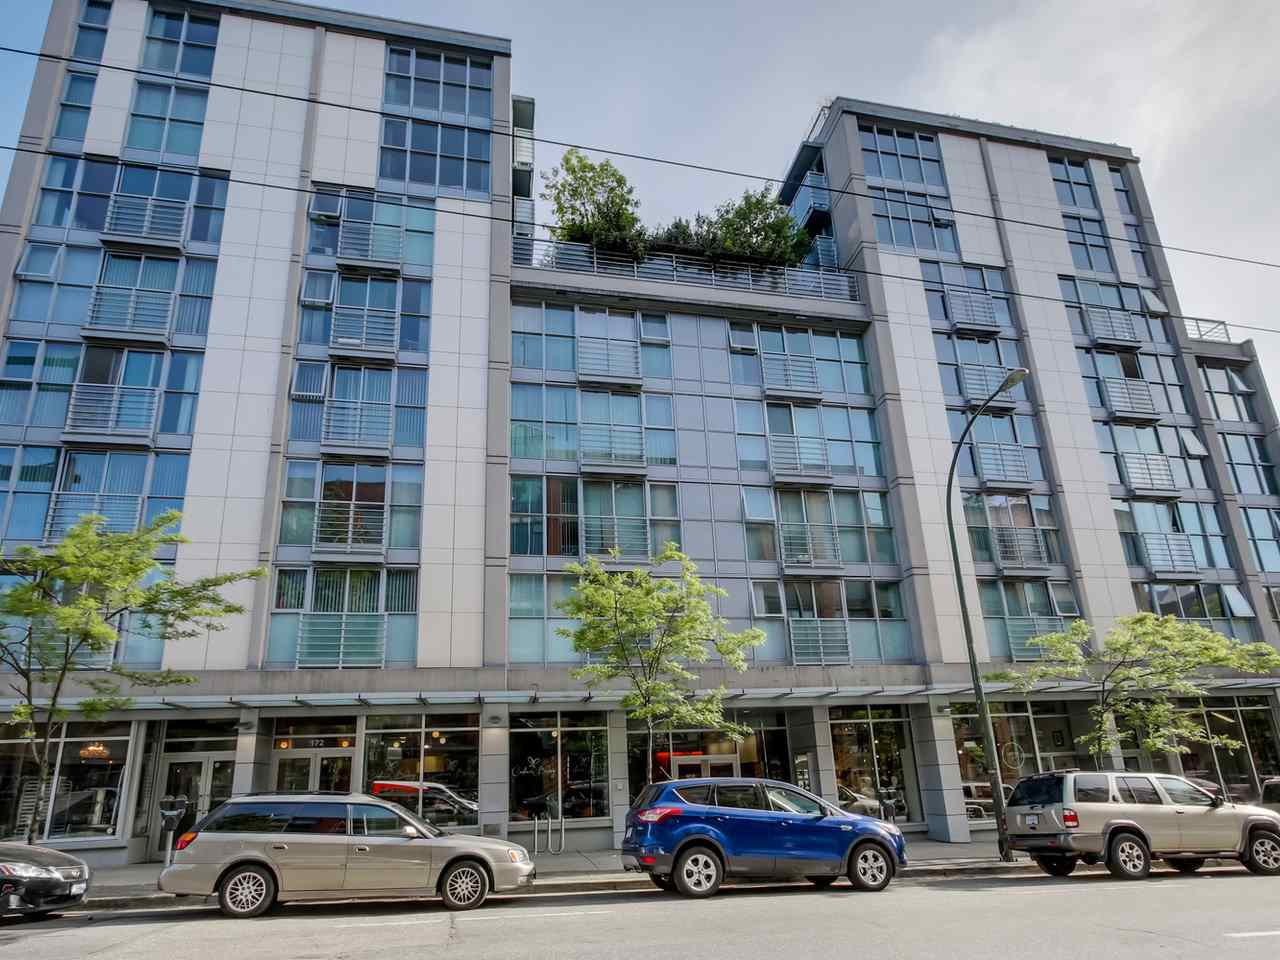 "Main Photo: 312 168 POWELL Street in Vancouver: Downtown VE Condo for sale in ""SMART BY CONCORD PACIFIC"" (Vancouver East)  : MLS®# R2066626"